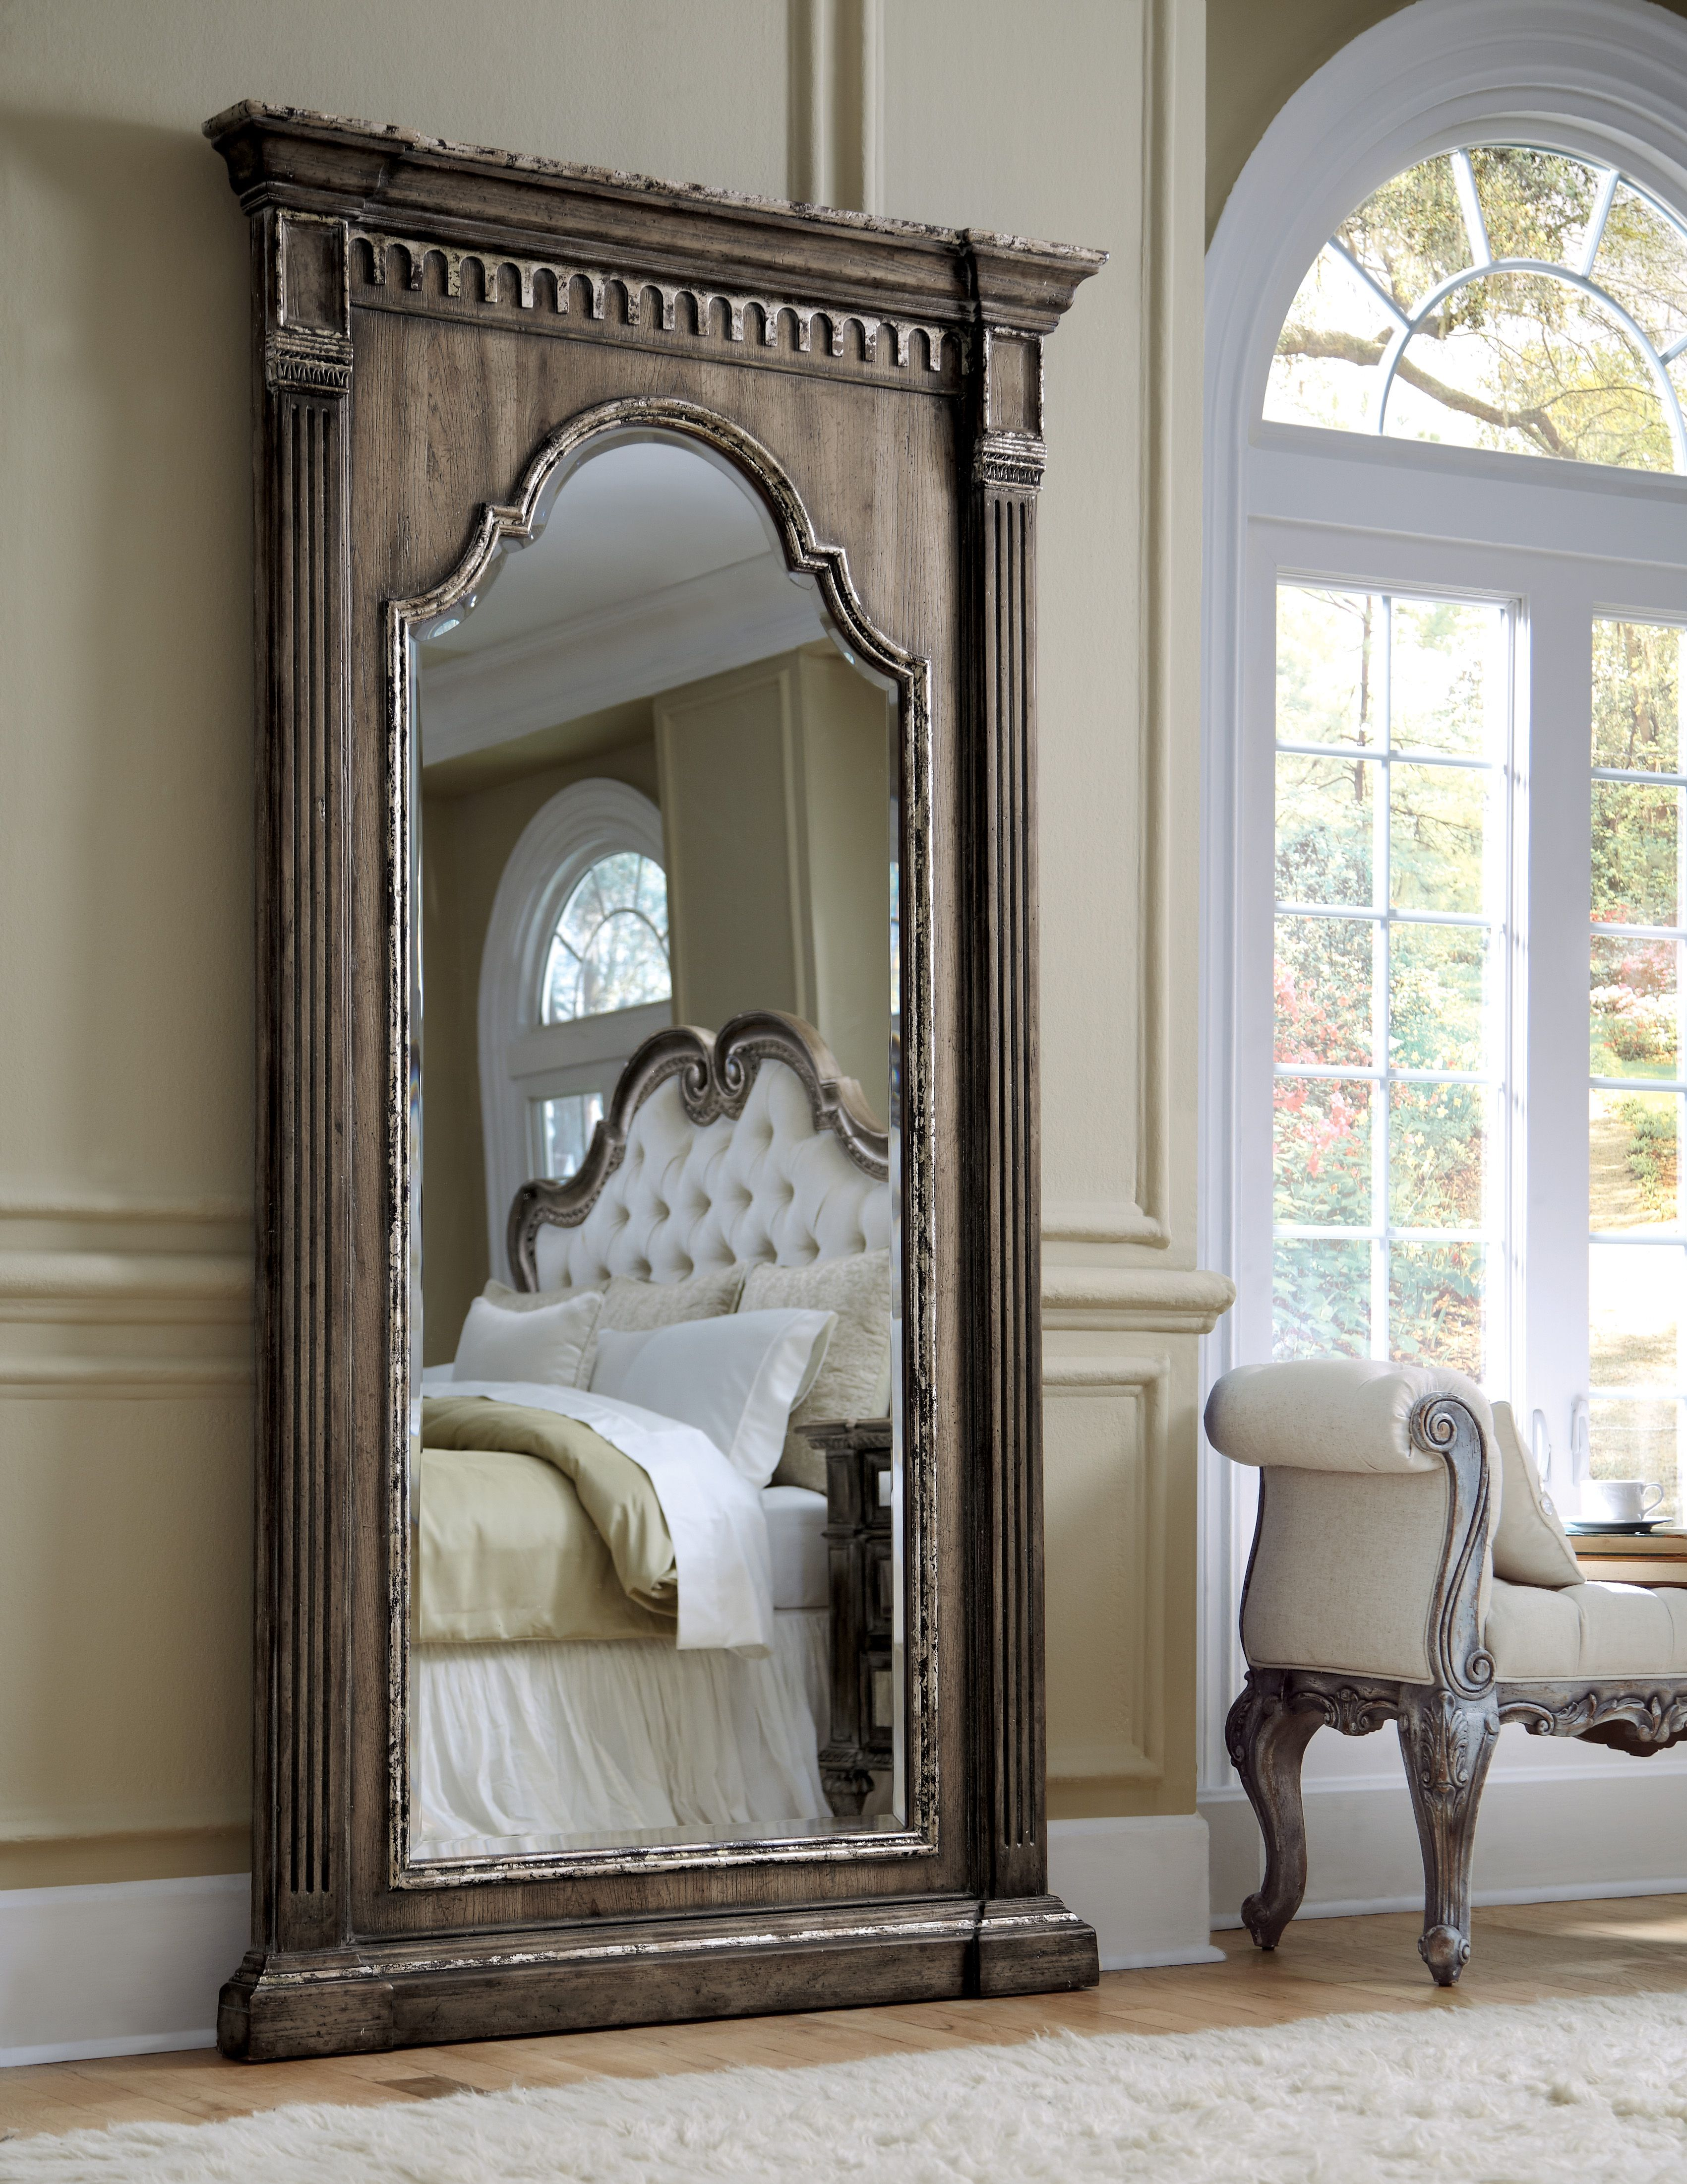 Arabella By Accentrics Home Bedroom Furniture #mirror #fulllengthmirror